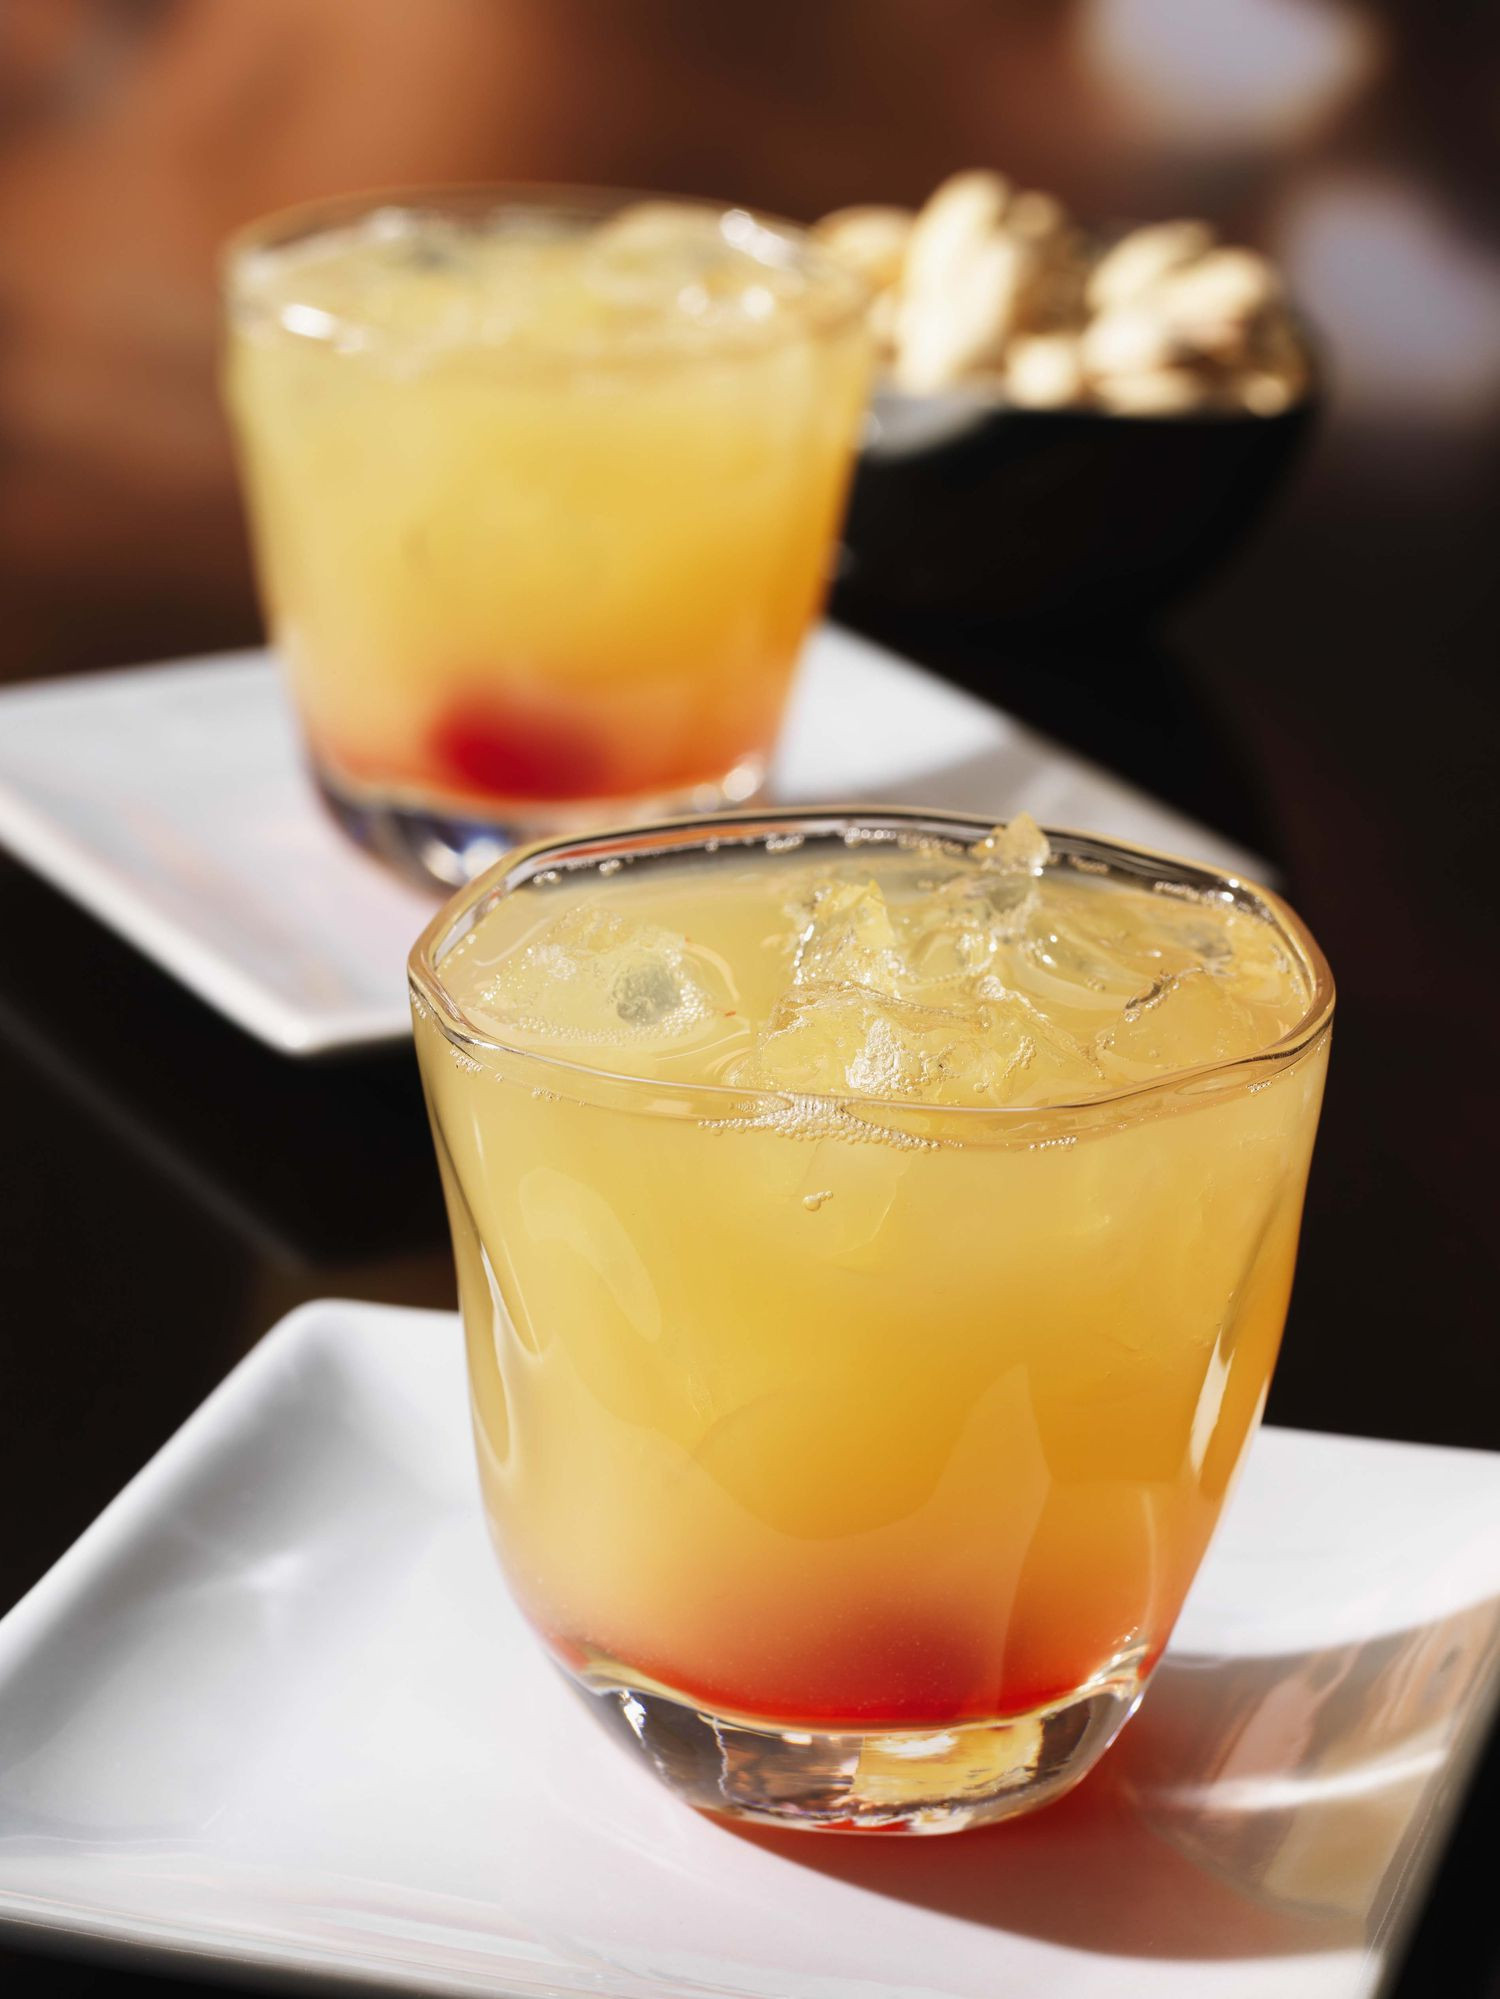 Cocktails With Tequila  Tequila Sunrise Cocktail Recipes